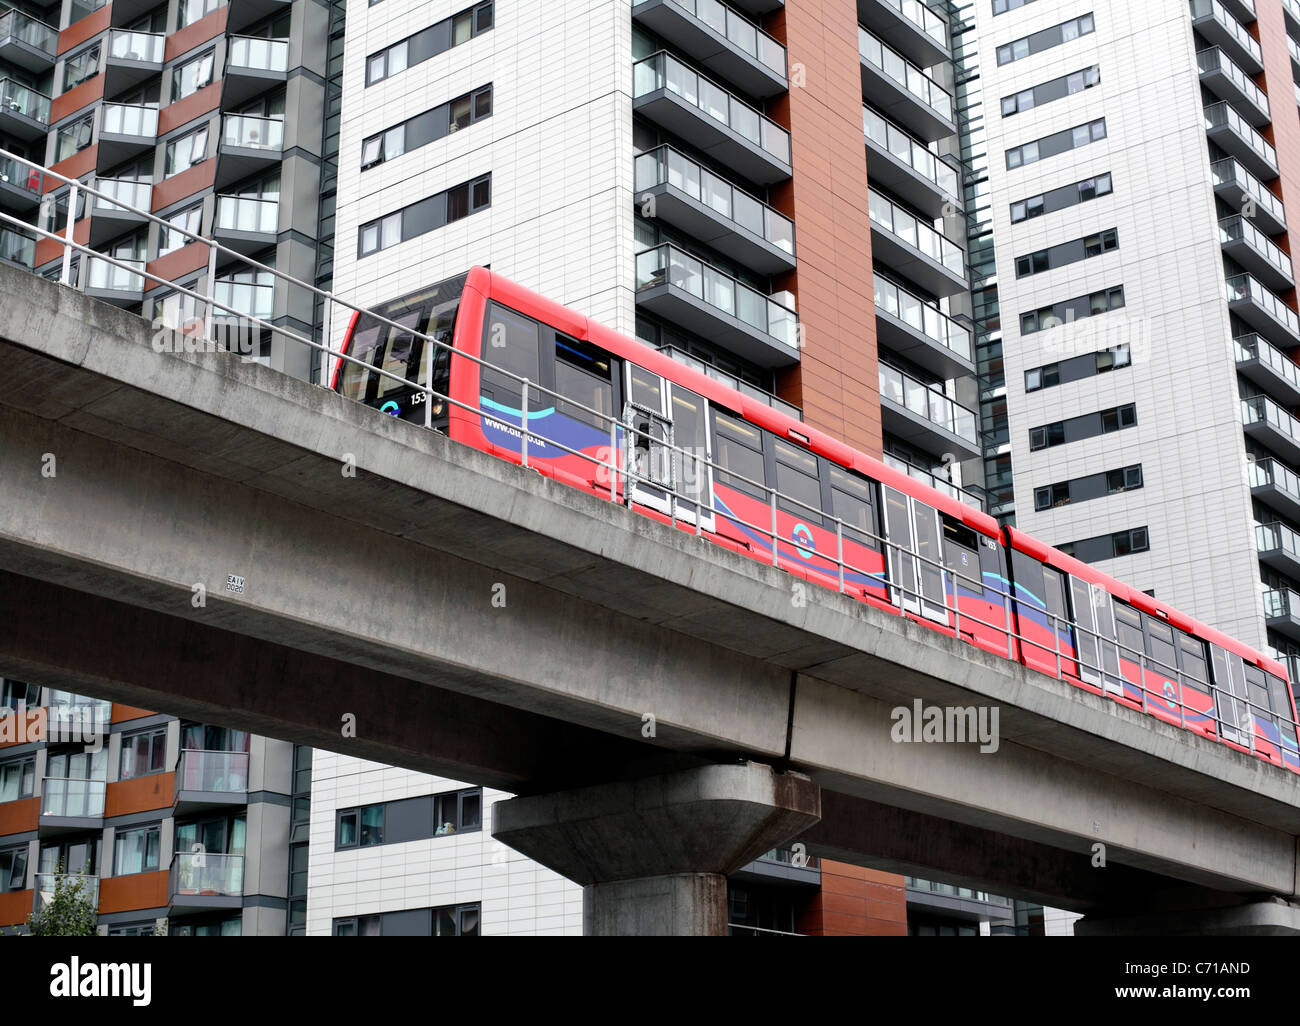 A train on the Docklands Light Railway passes new apartment blocks near East India DLR station on Blackwall Way, - Stock Image